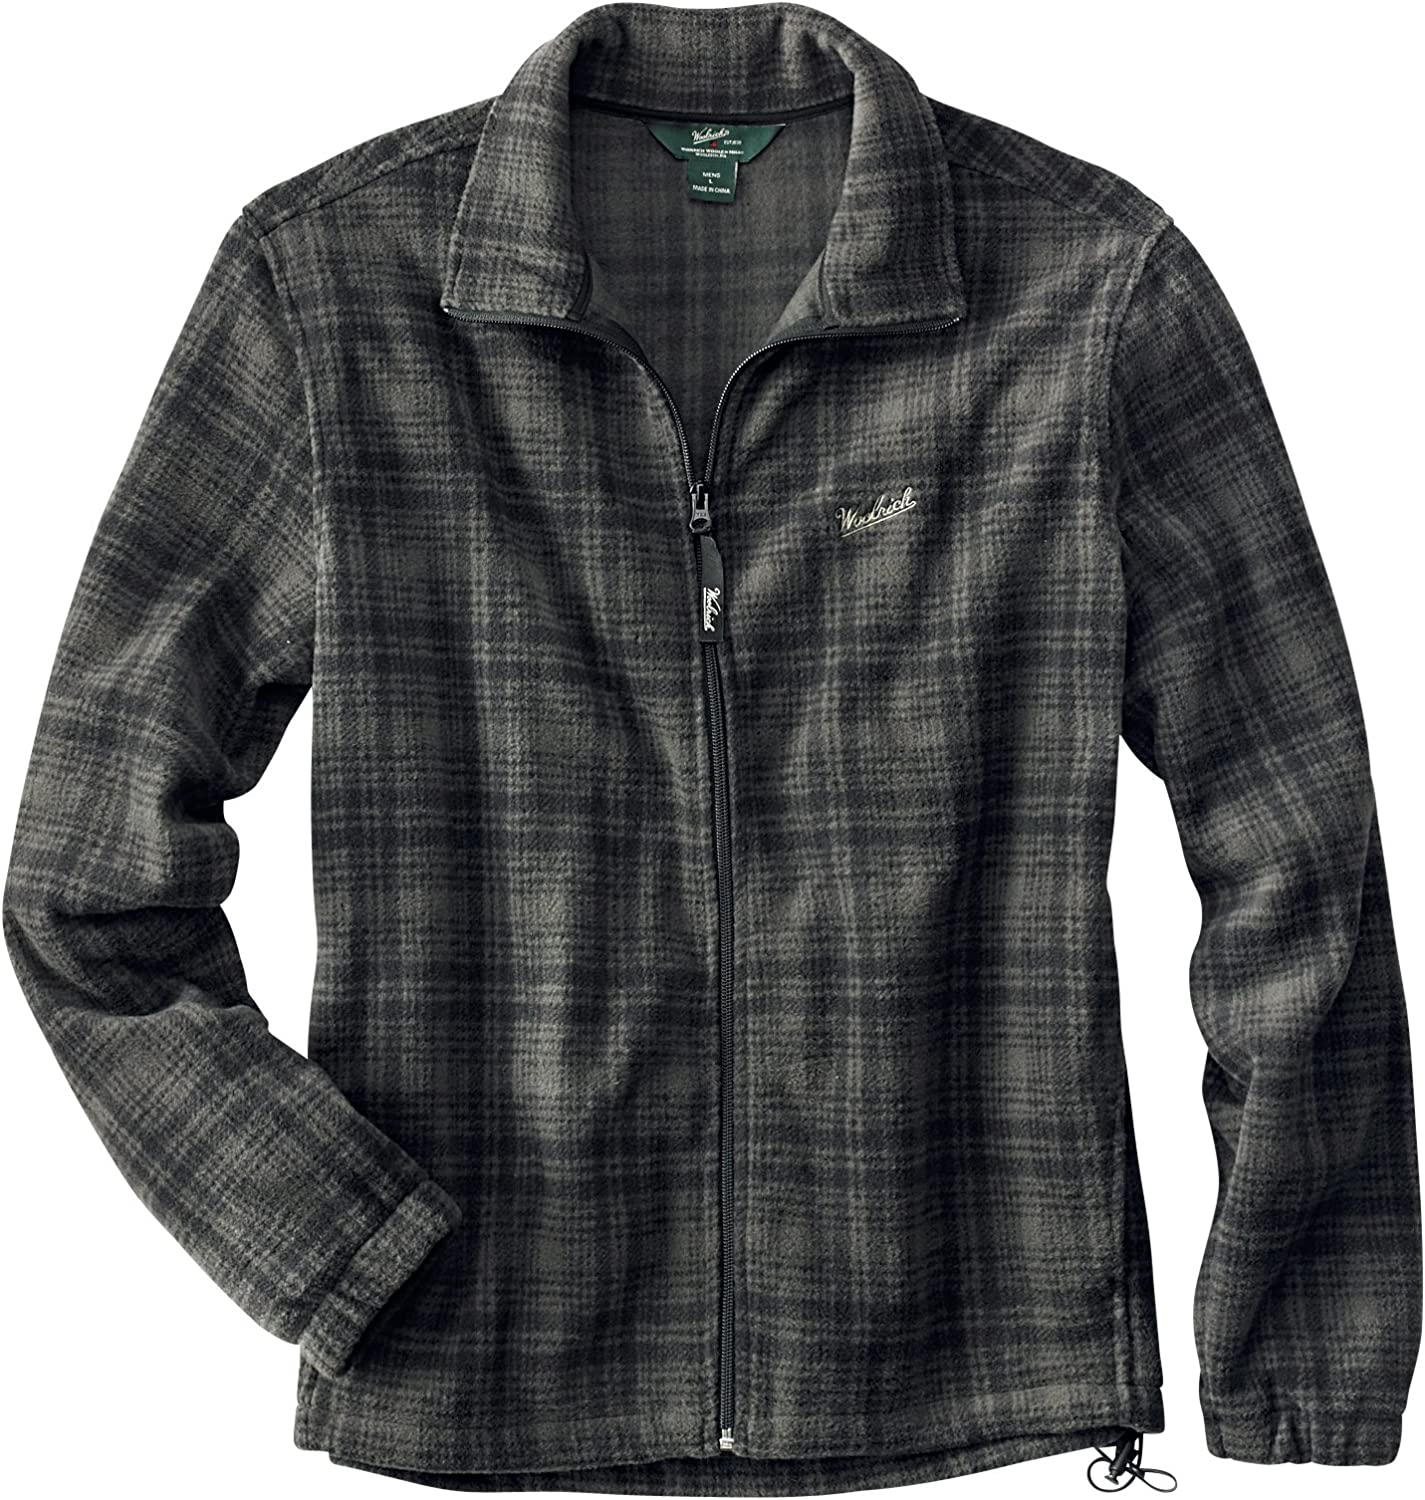 Woolrich Men's Andes Popular shop is the lowest price challenge Fleece Printed Jacket Max 44% OFF